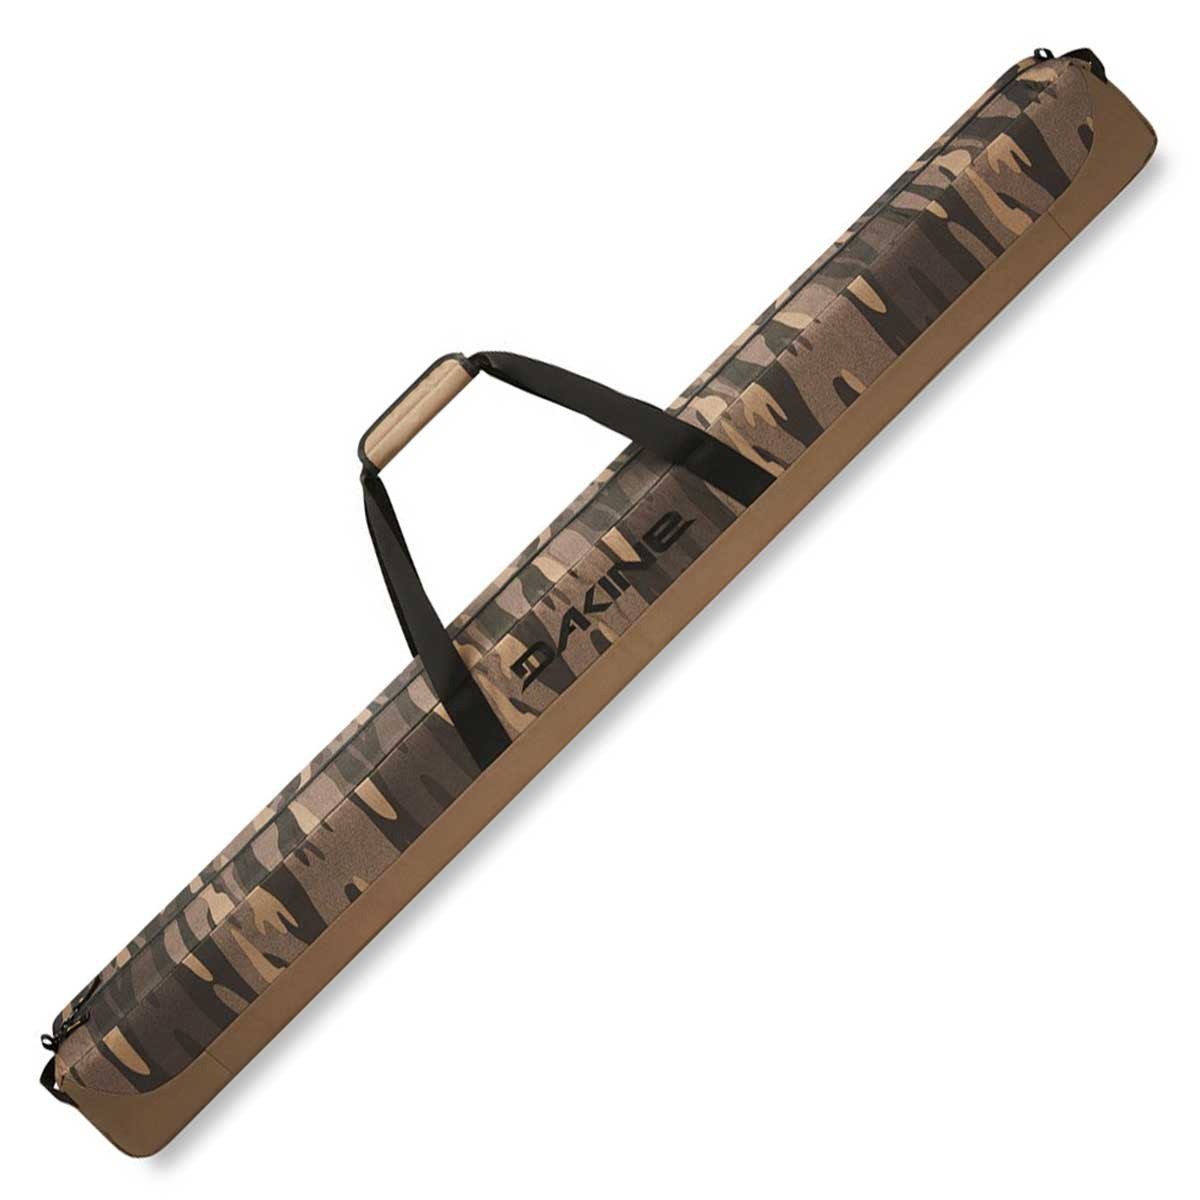 Dakine ski sleeve in Field Camo